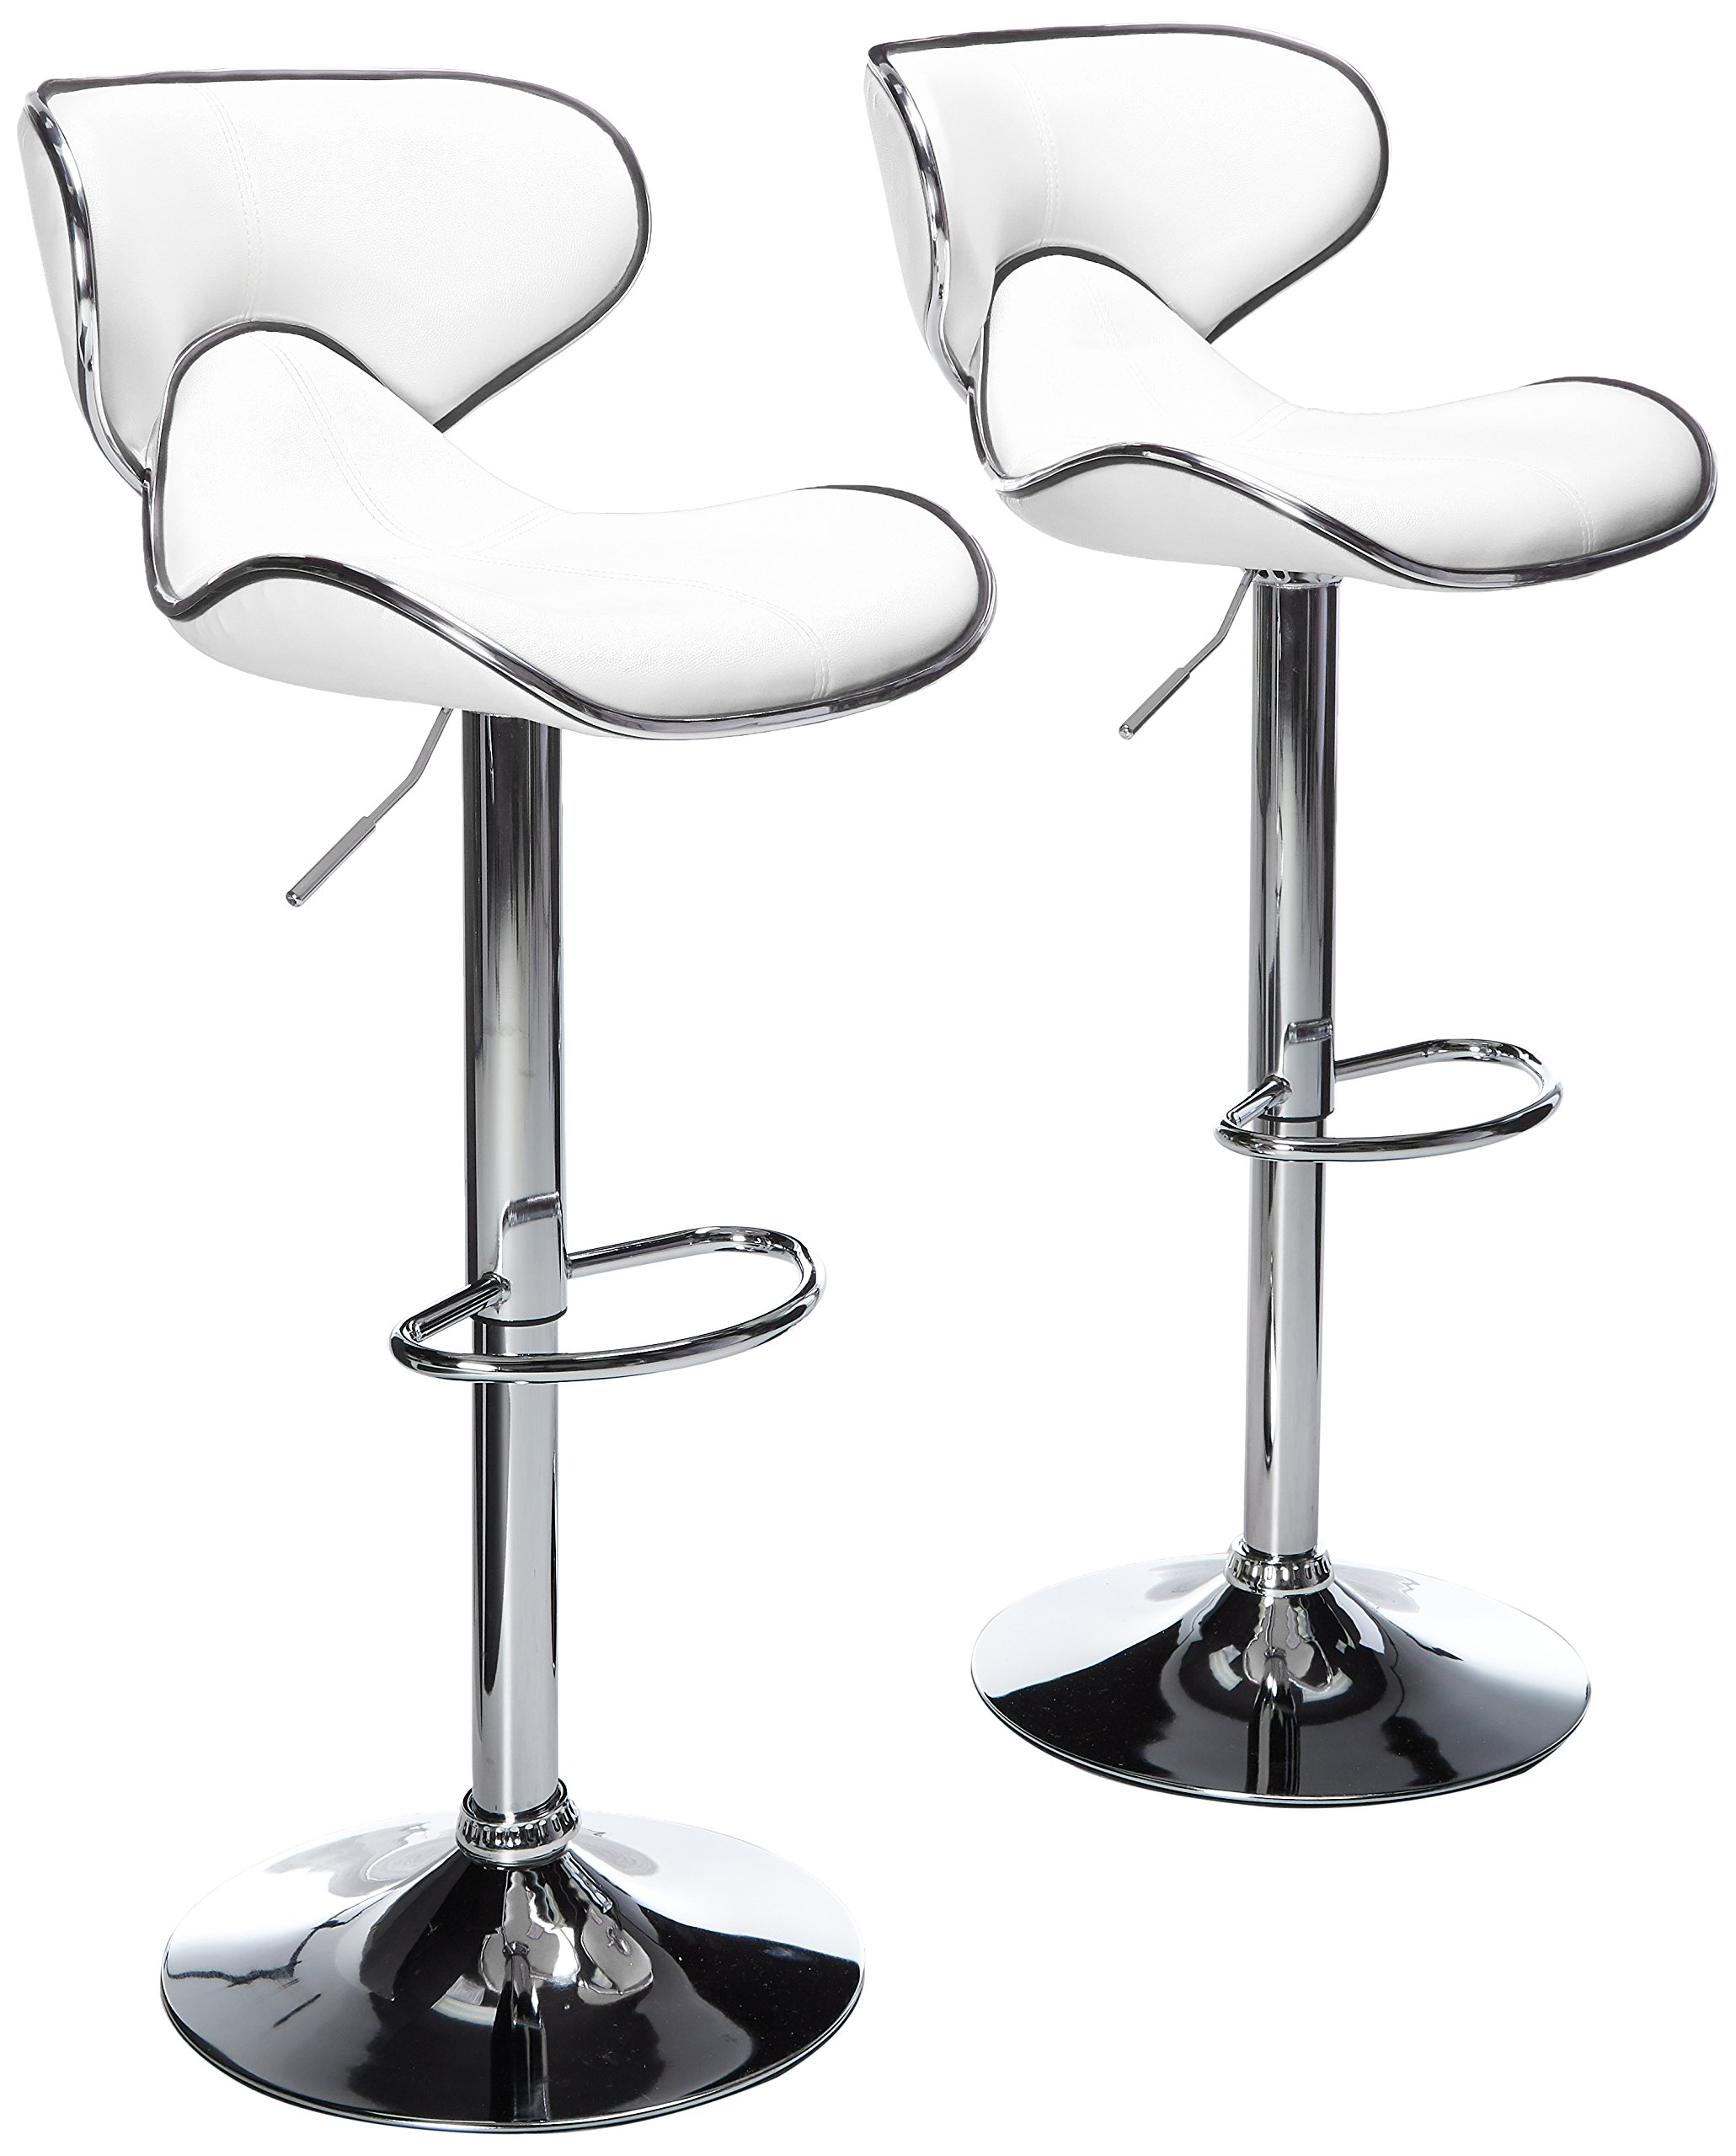 Roundhill Furniture Masaccio Cushioned White Leatherette Upholstery Airlift Swivel Barstool (Set of 2) by Roundhill Furniture